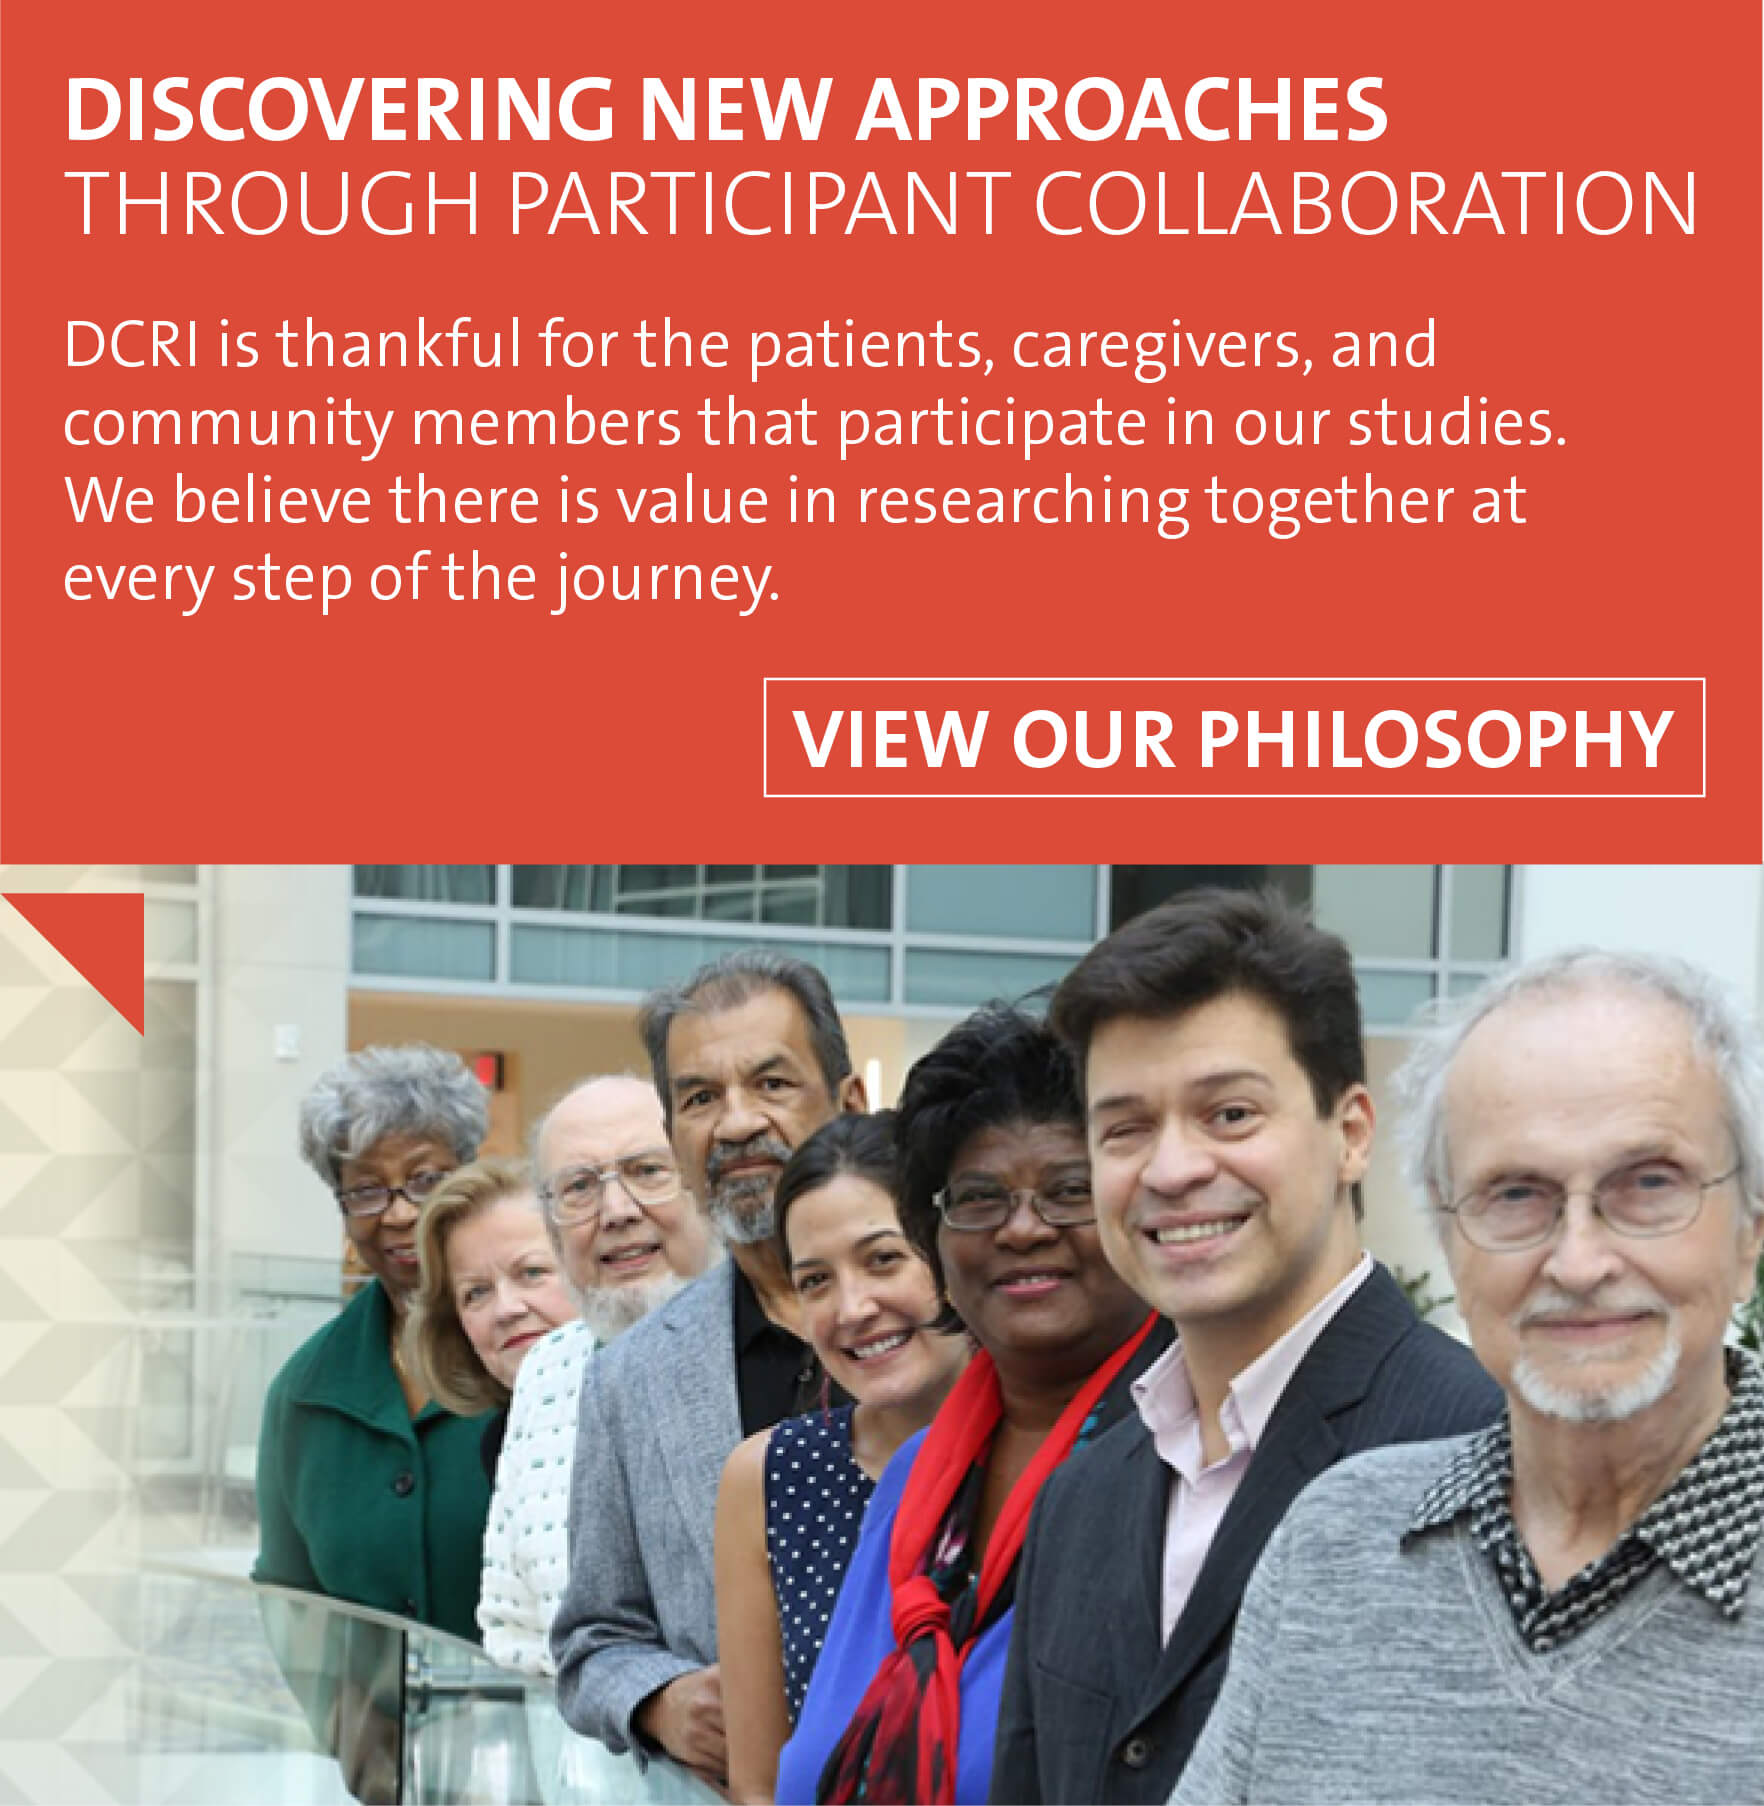 Discovering new approaches through participant collaboration is part of what makes DCRI unique. We are thankful for the patients, caregivers, and community members that participate in our studies. We believe there is value in researching together at every step of the journey.